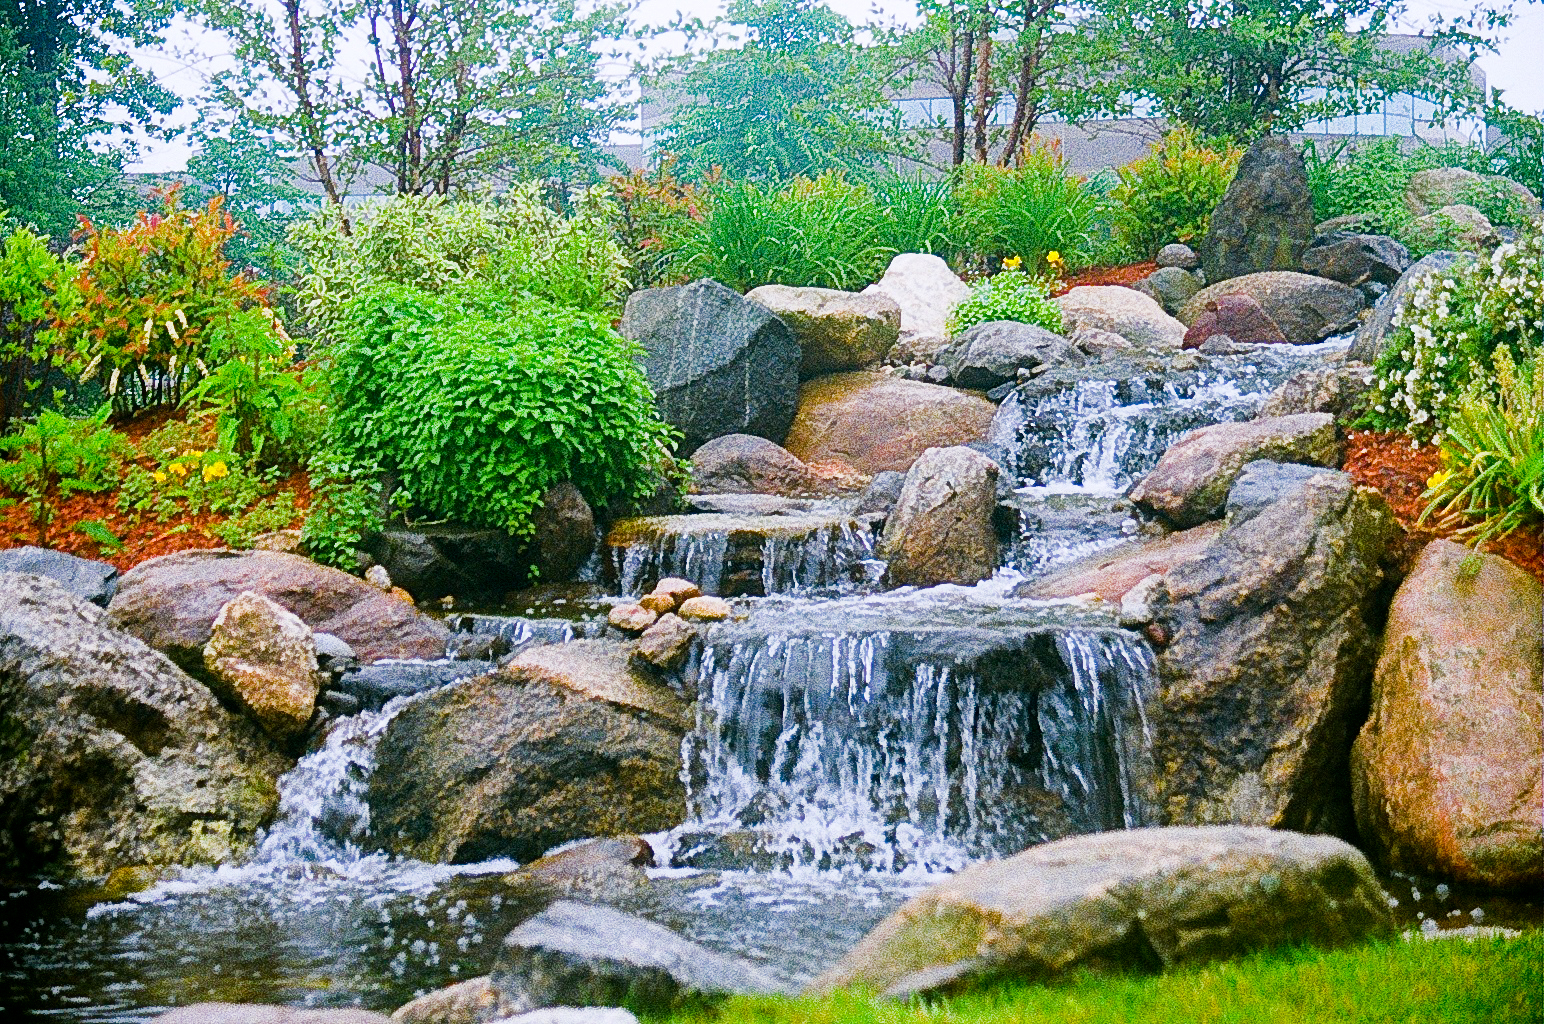 Garden water features services in brisbane queensland au for Best apps for garden and landscaping designs